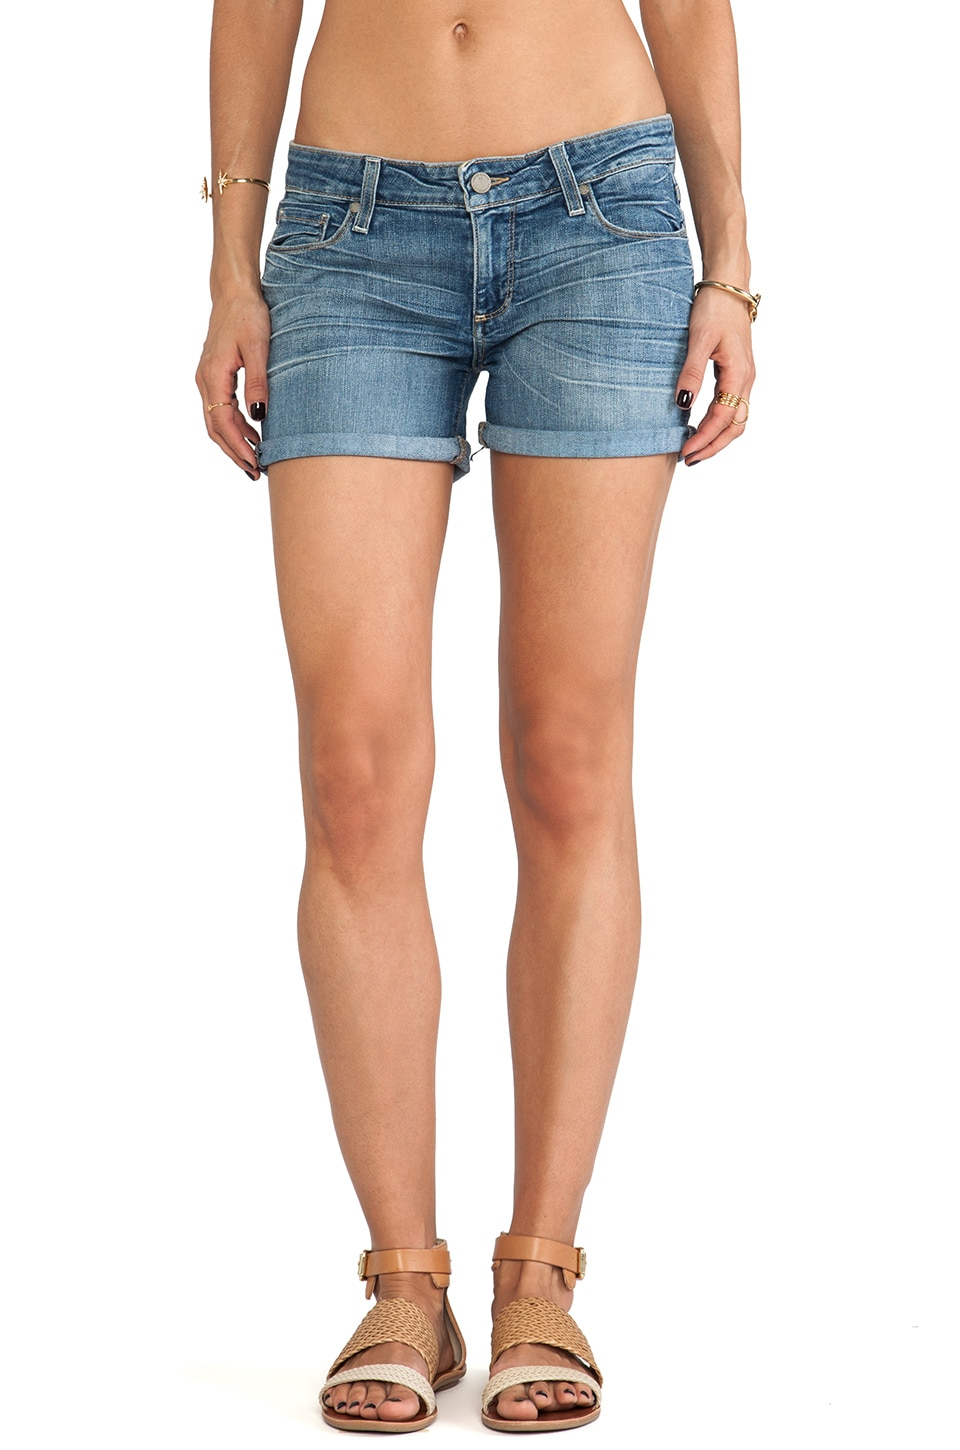 Paige Denim Jimmy Jimmy Short in Tigerlily